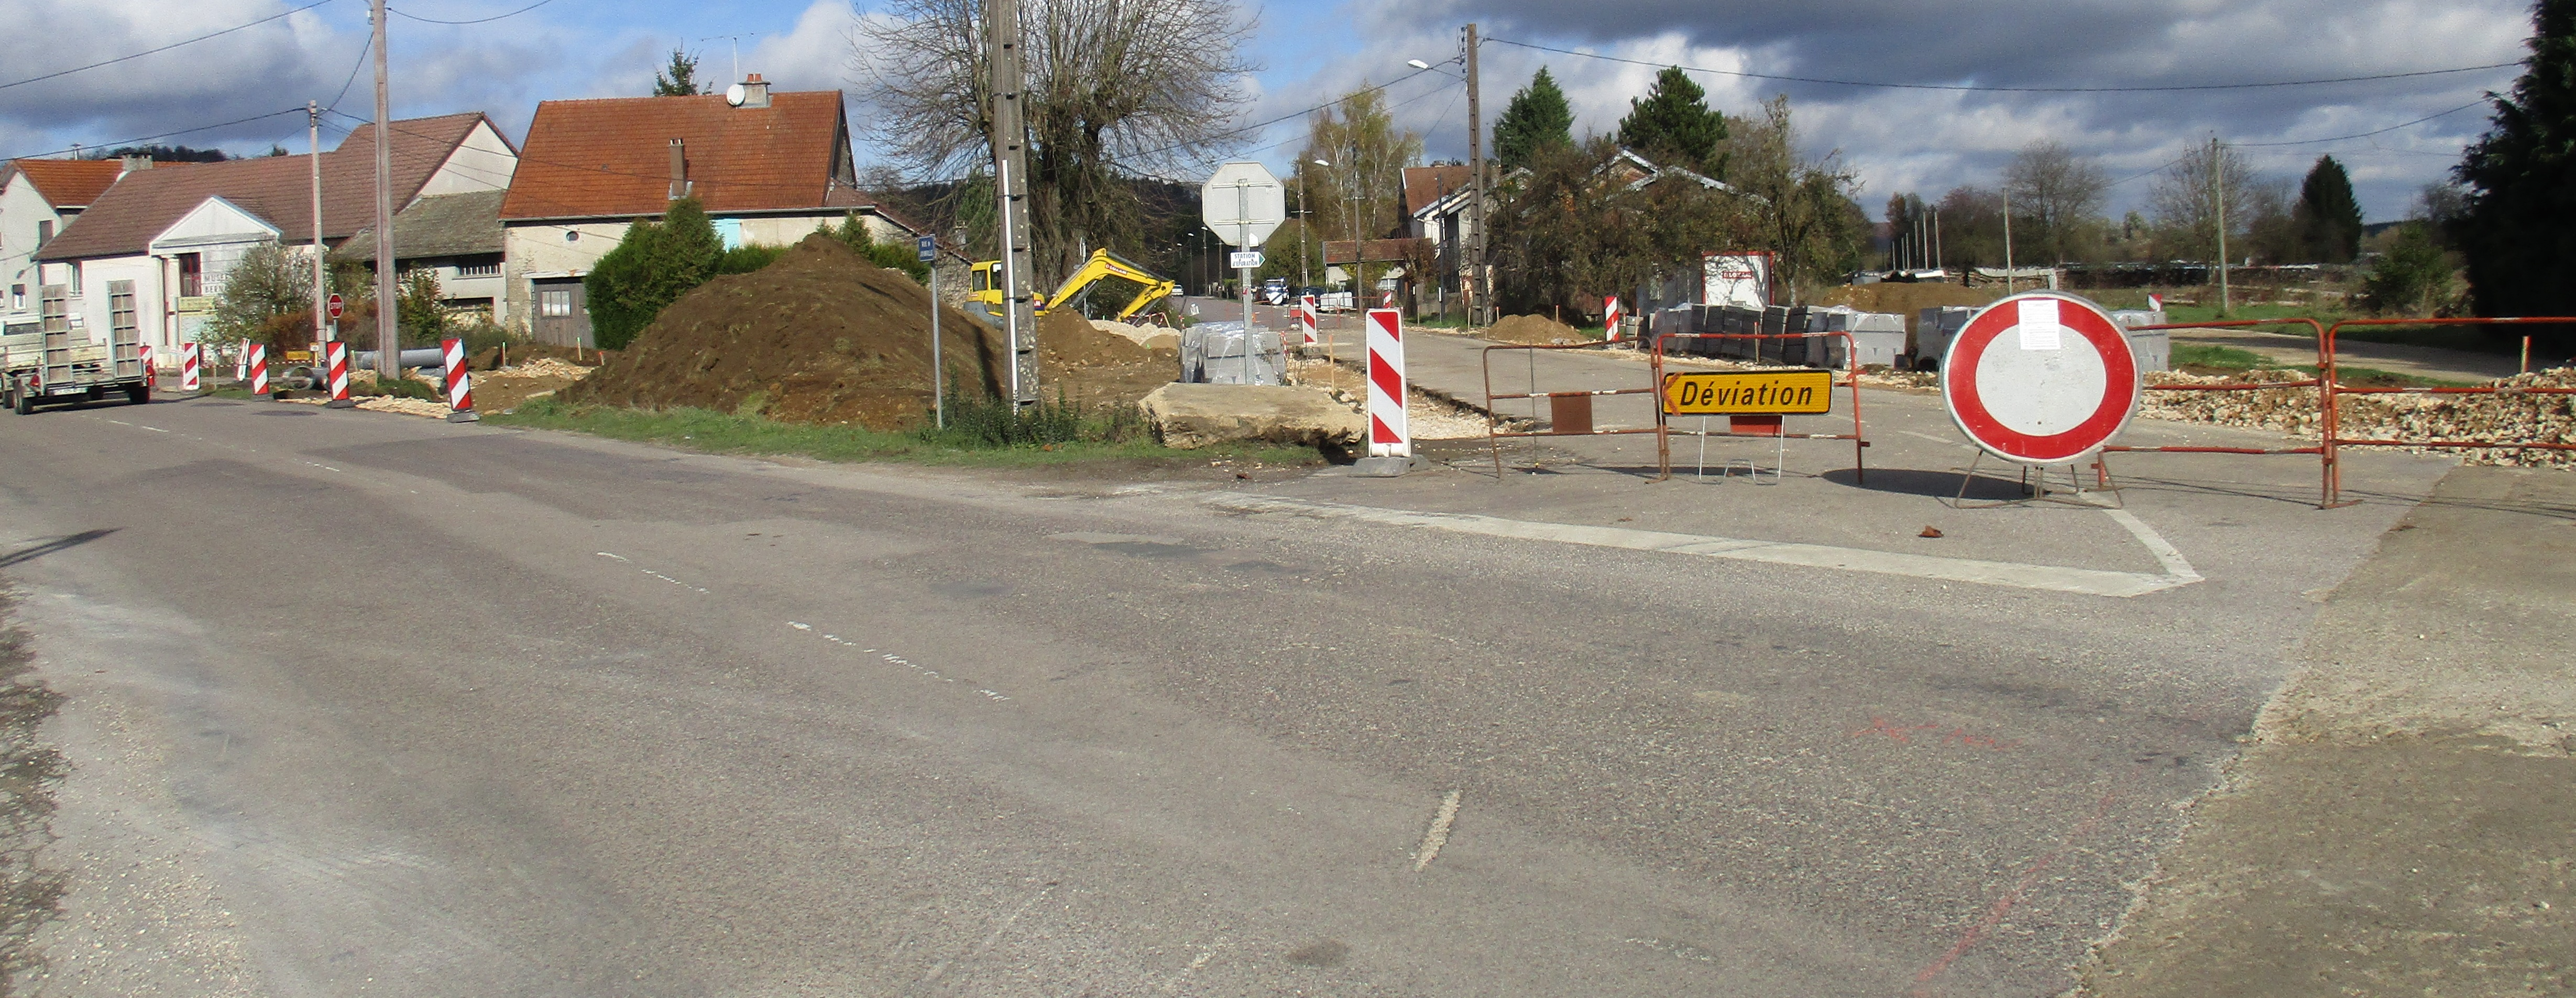 travaux-carrefour-rd71-427